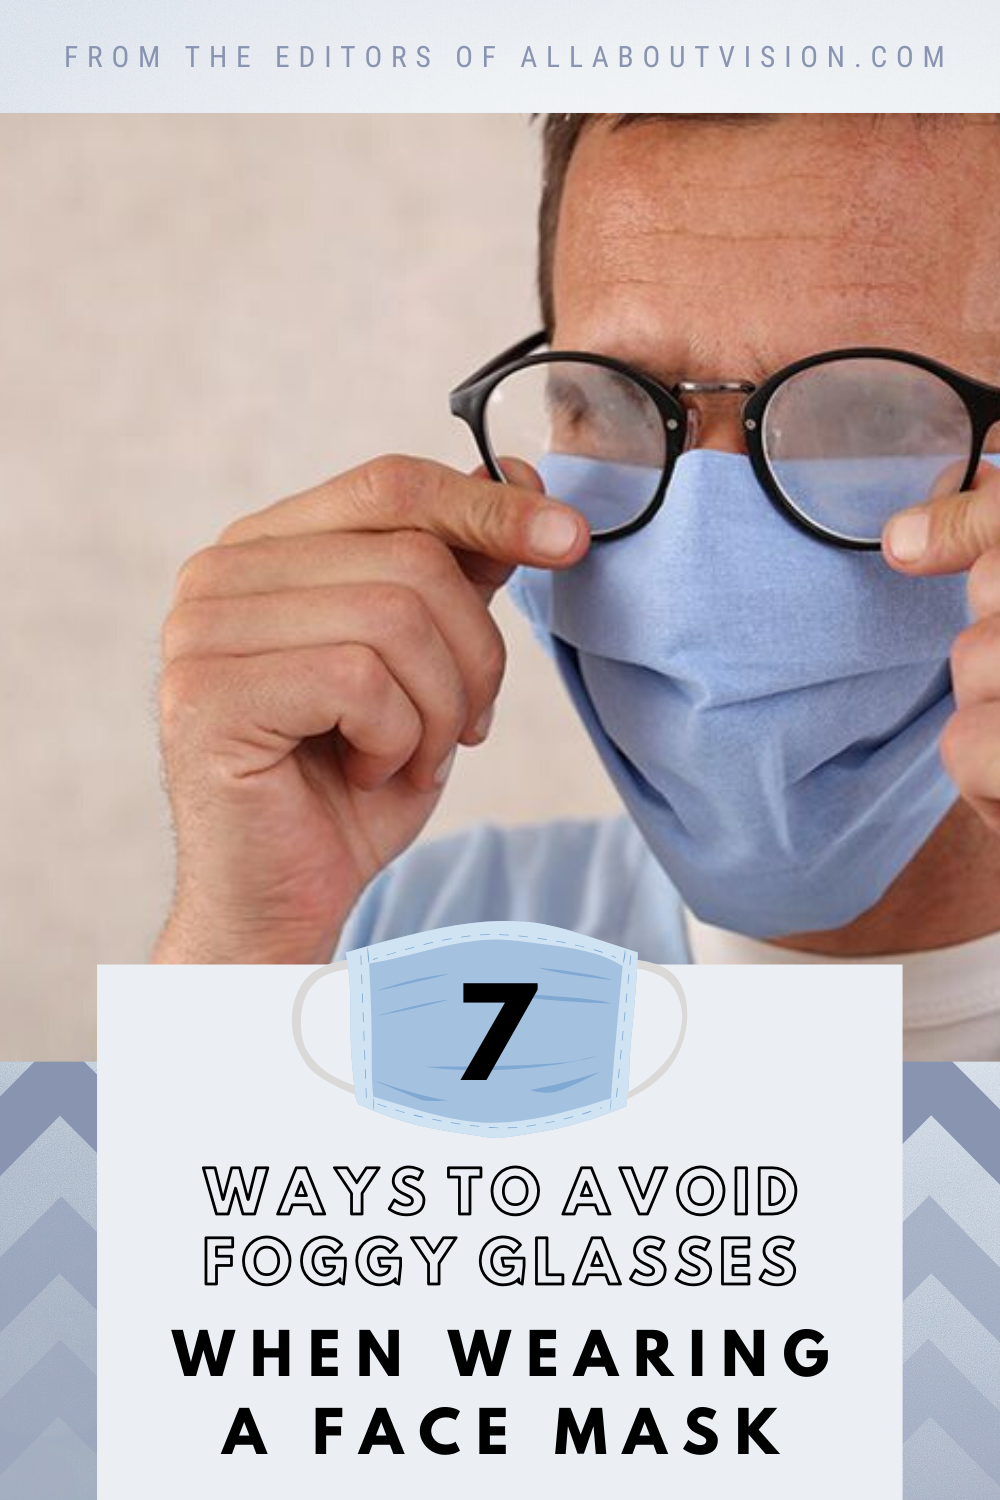 7 ways to avoid foggy glasses when wearing a face mask in